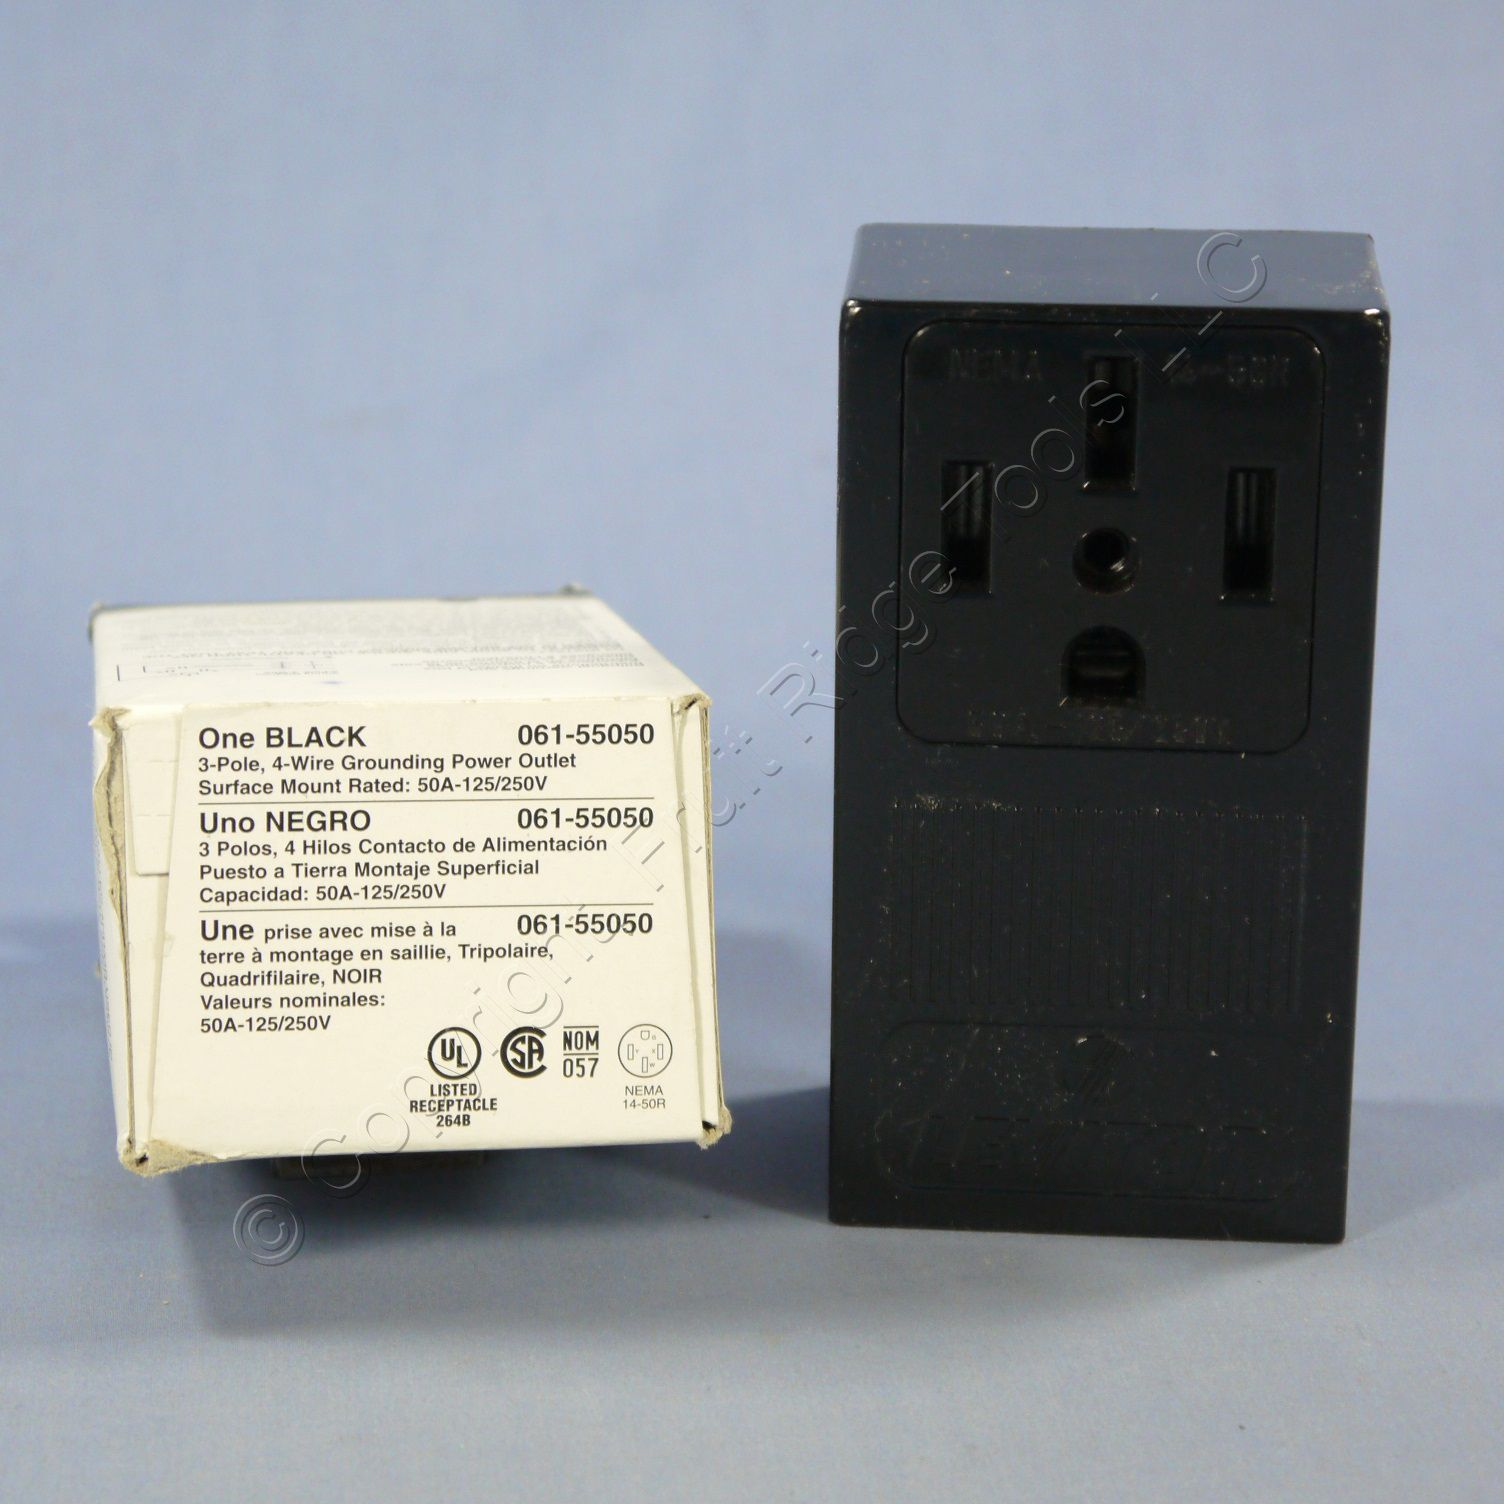 Buy Leviton Surface Mount Receptacle Outlet Oven Range Stove 14-50 ...